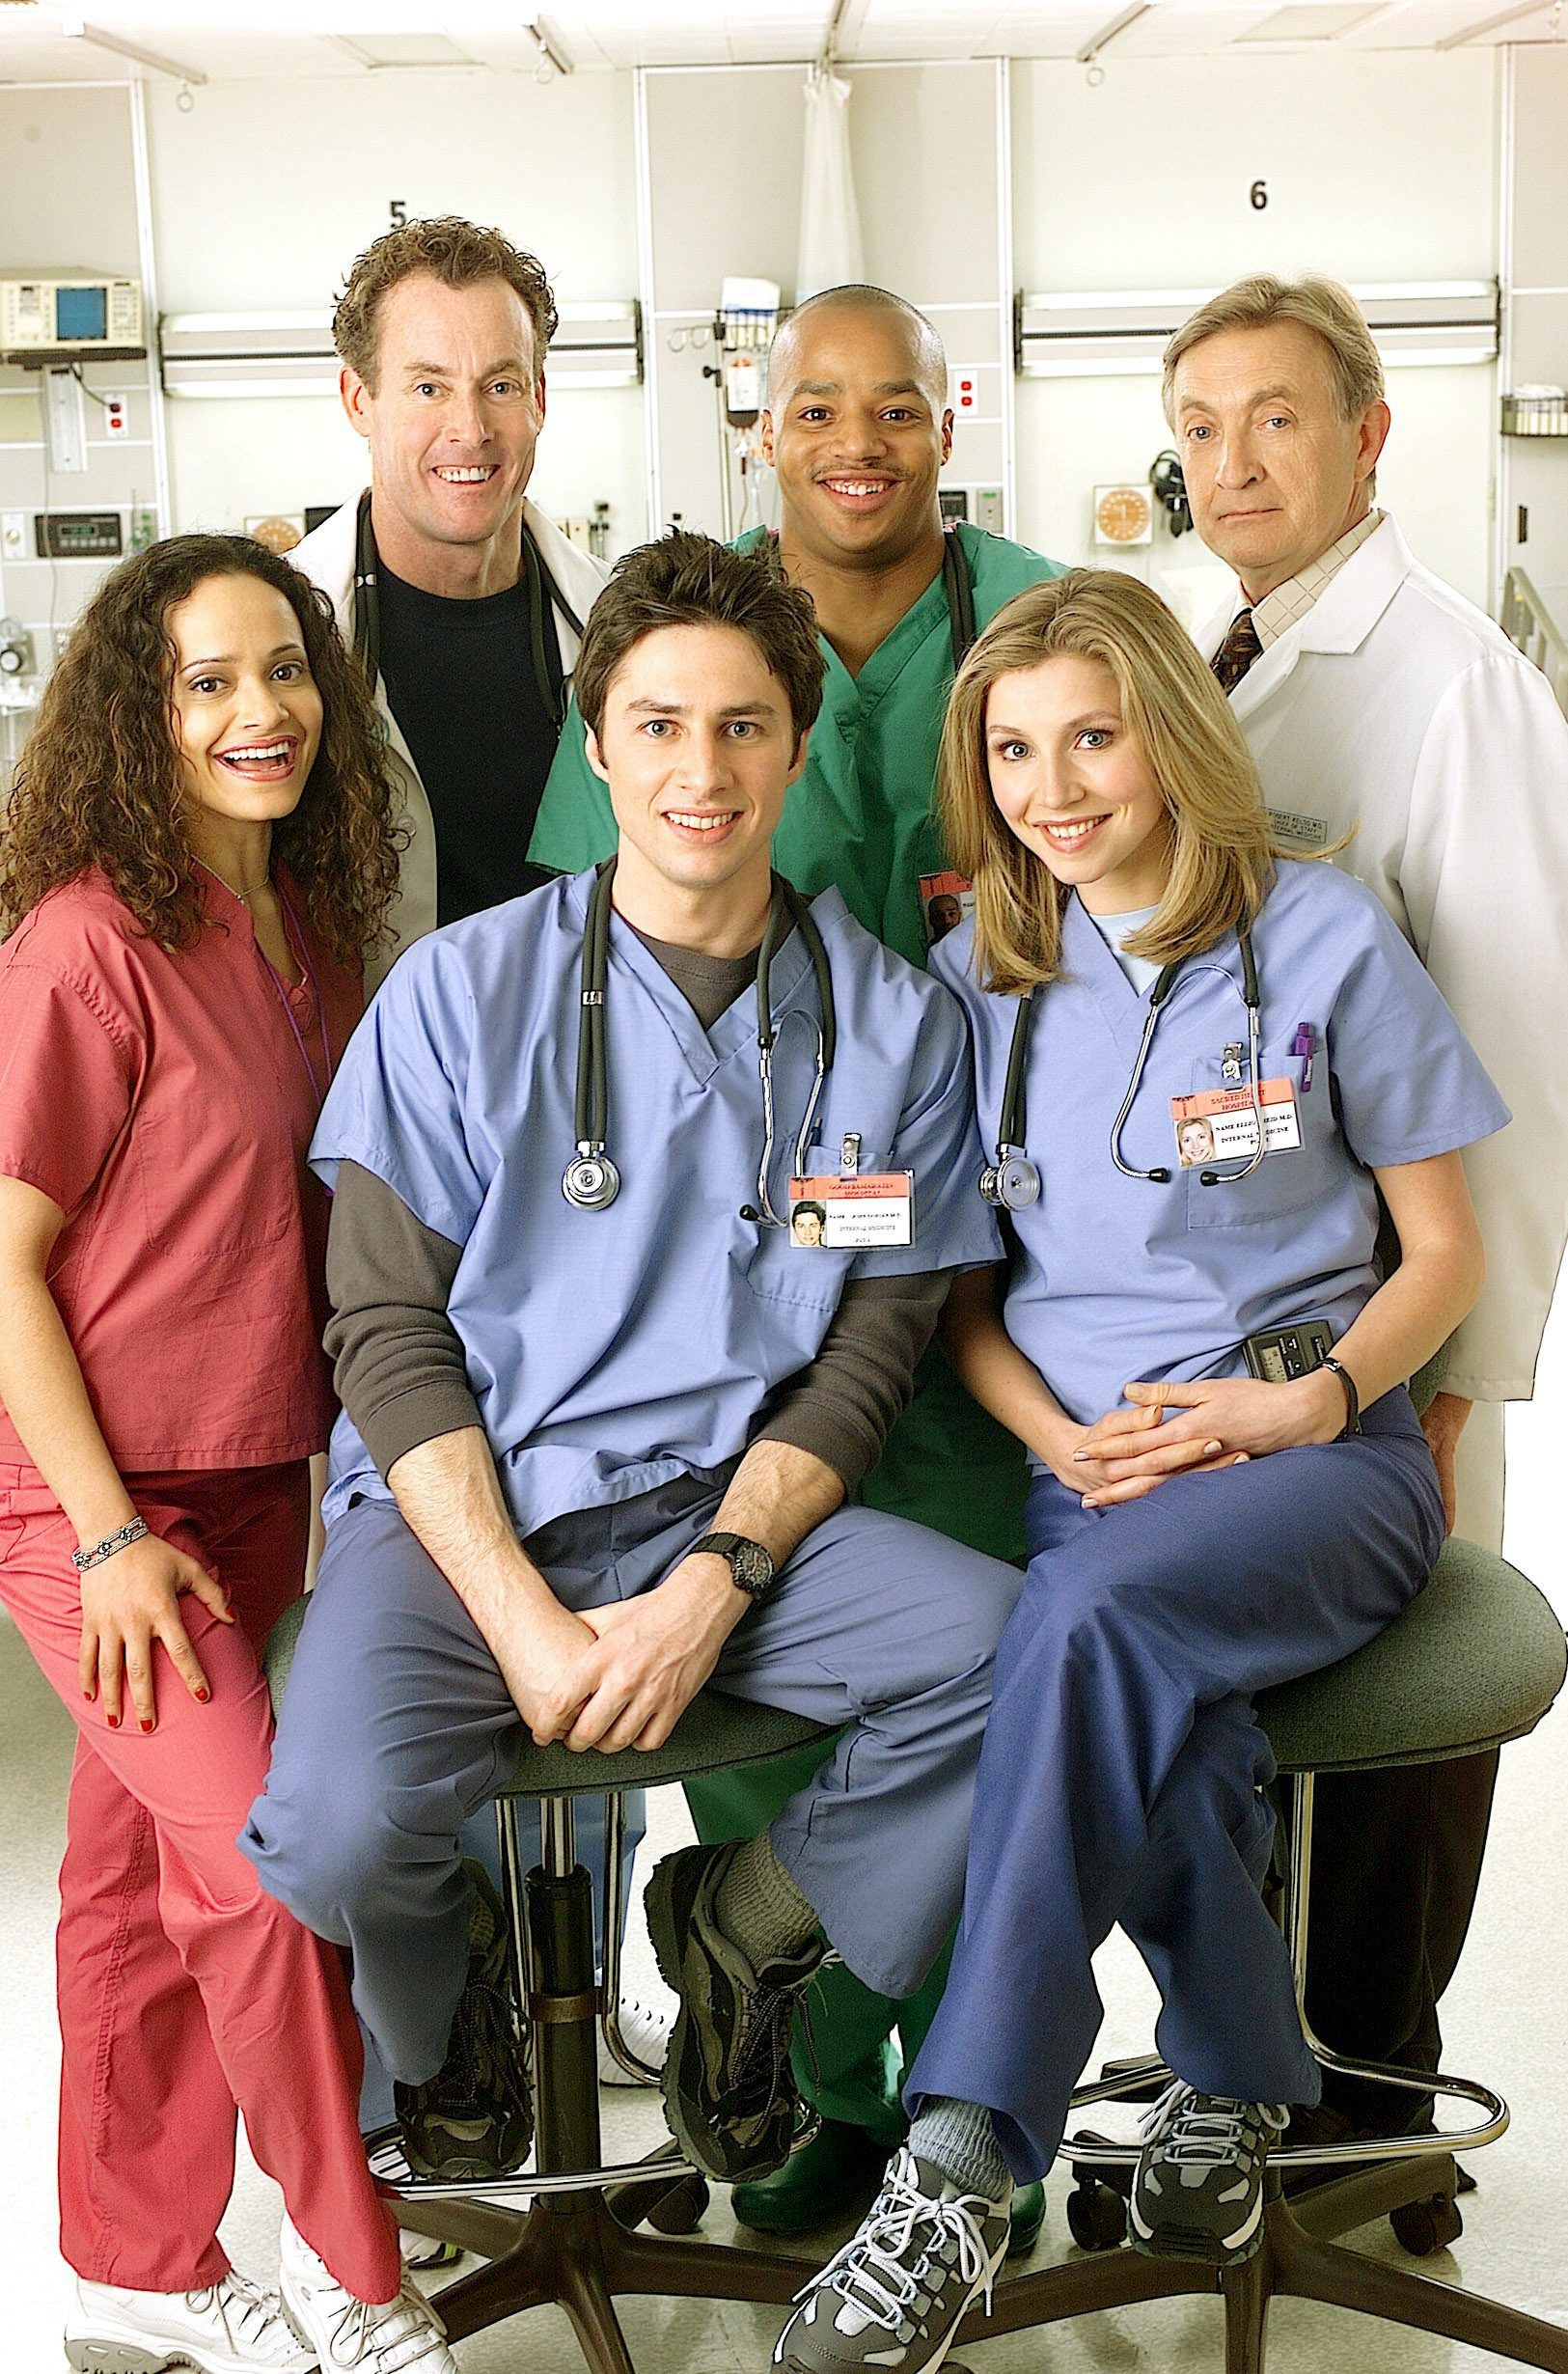 Cast Of Scrubs: How Much Are They Worth Now?